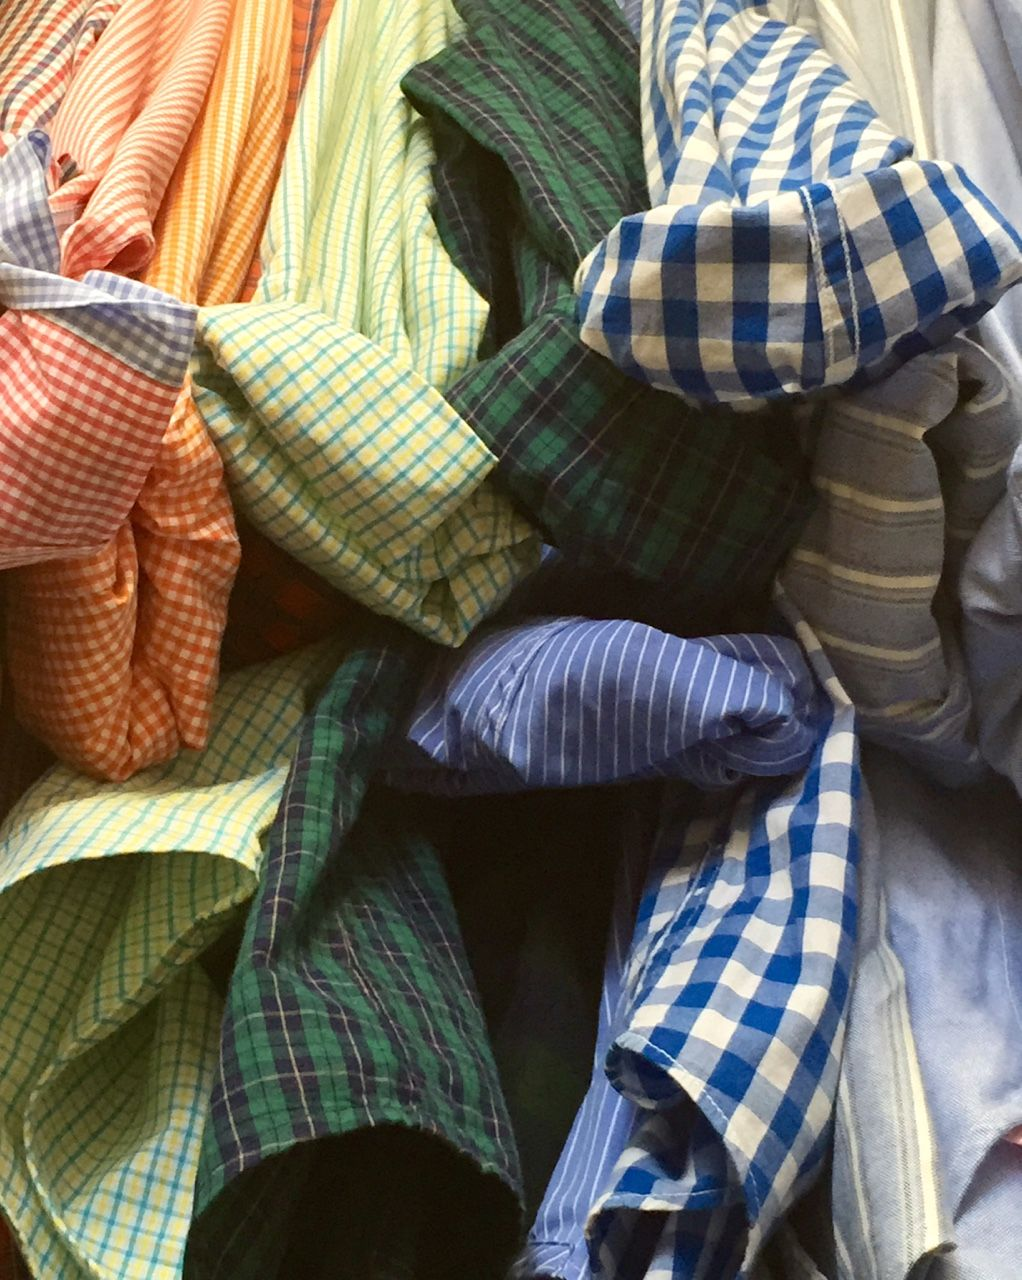 Shirts of all stripes (and plaids, and ginghams, and solids too)